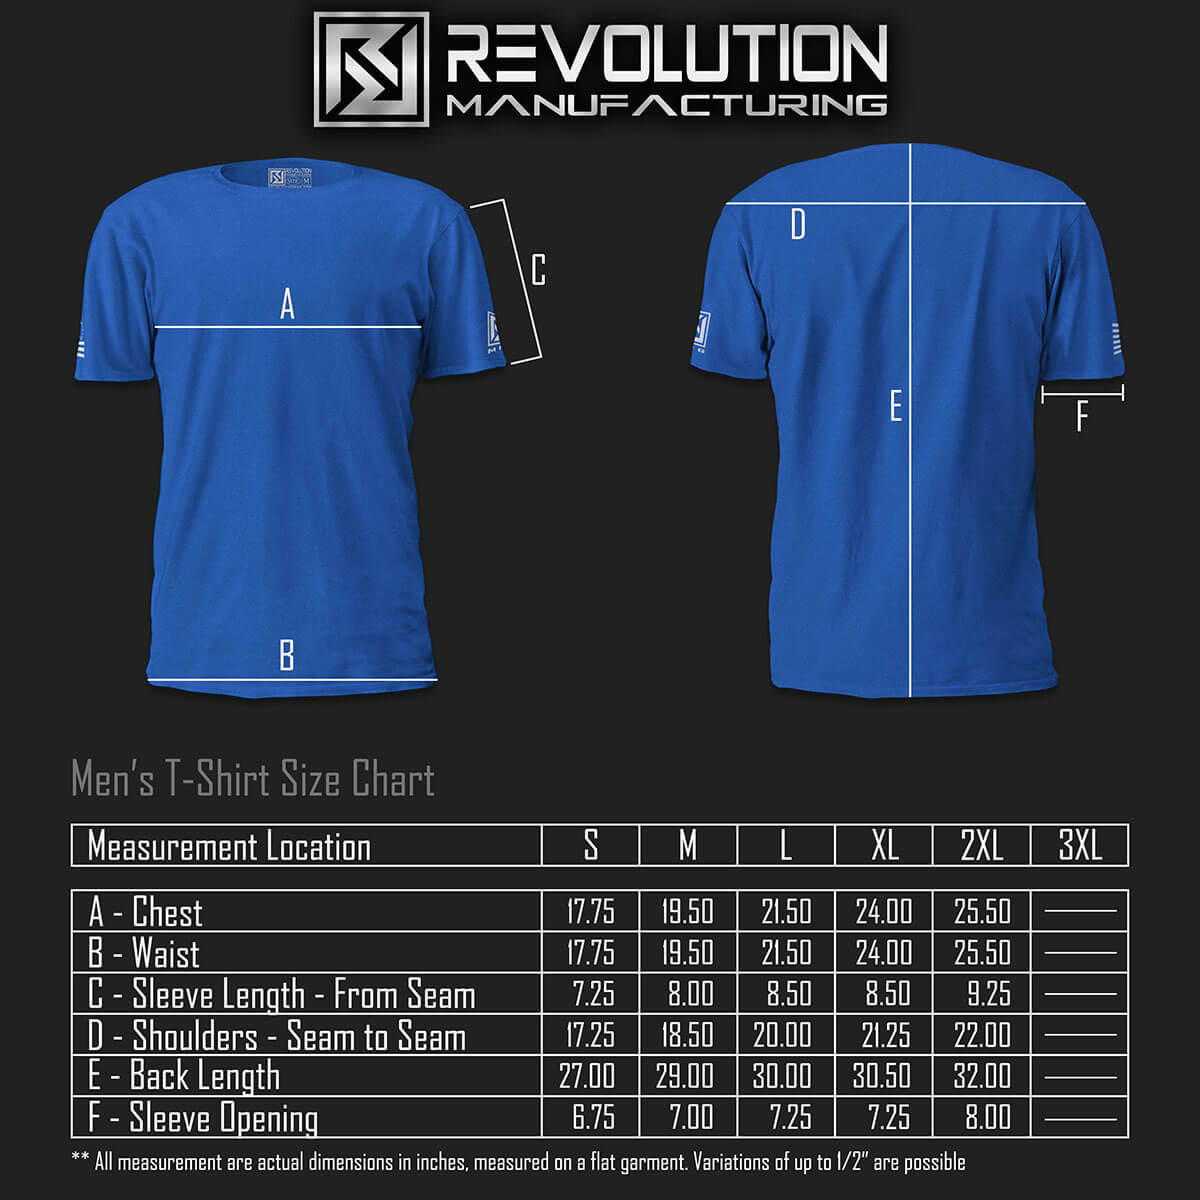 Revolution Manufacturing Made In Usa Men's Tee Sizing Chart